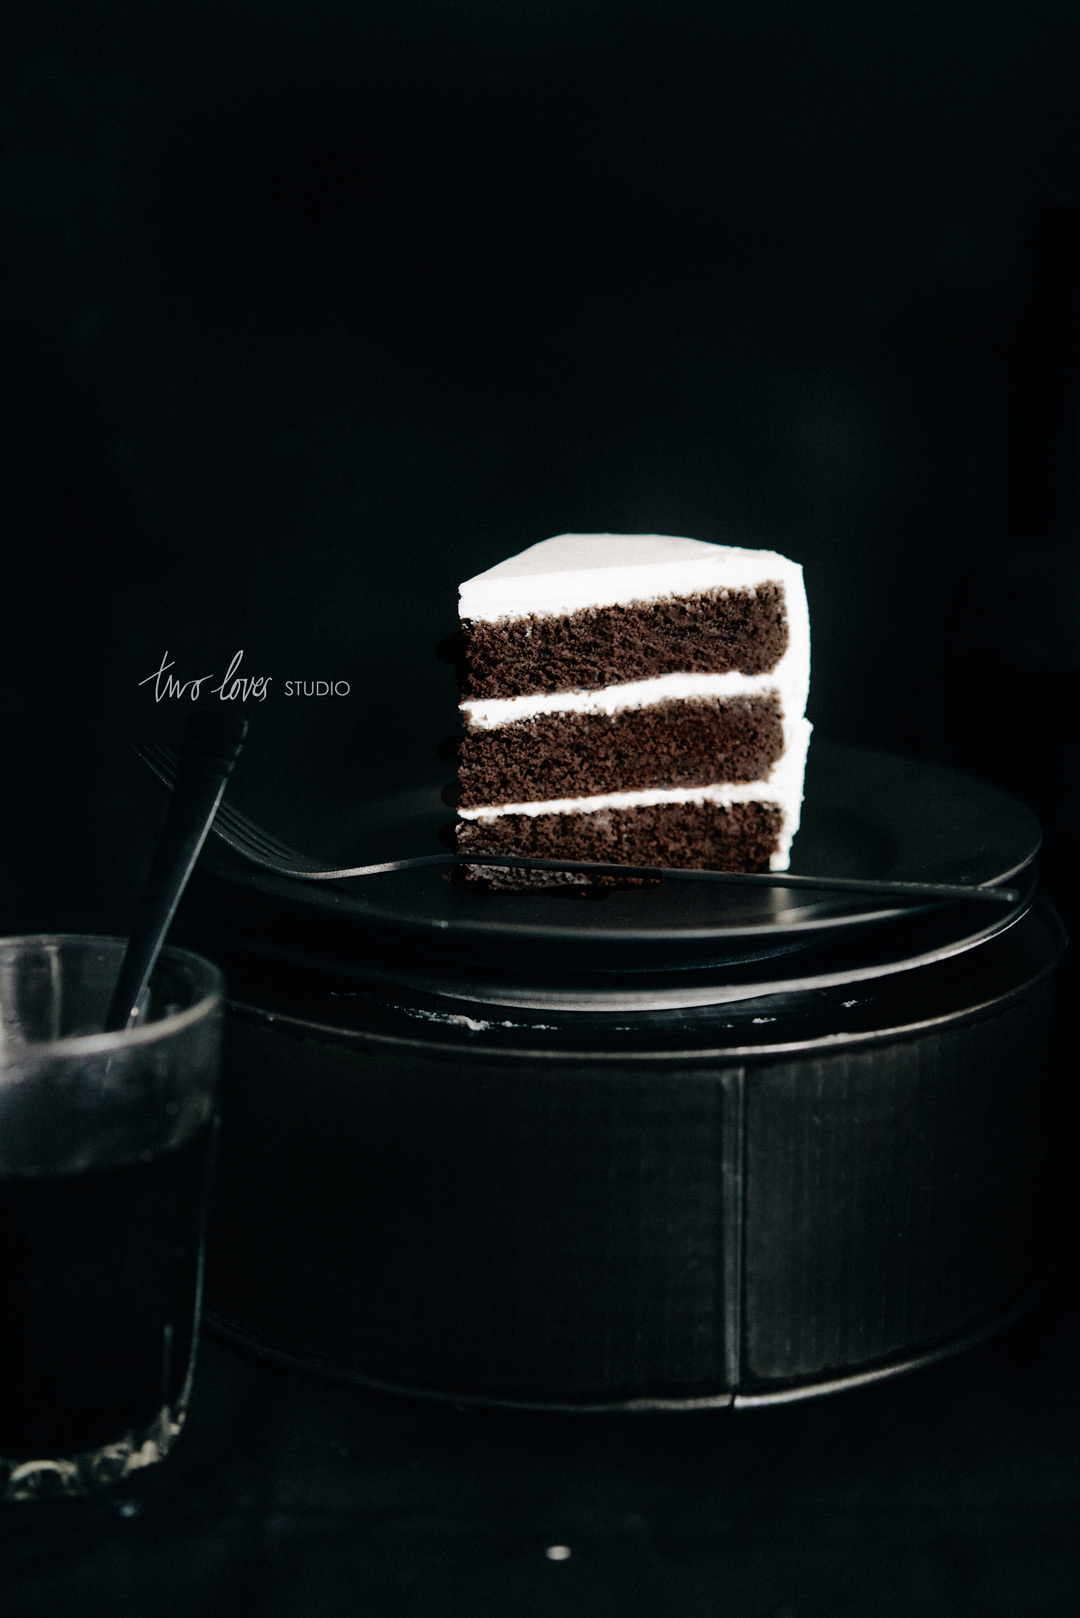 Two loves studio black white food photography chocolate cake two loves studio black white